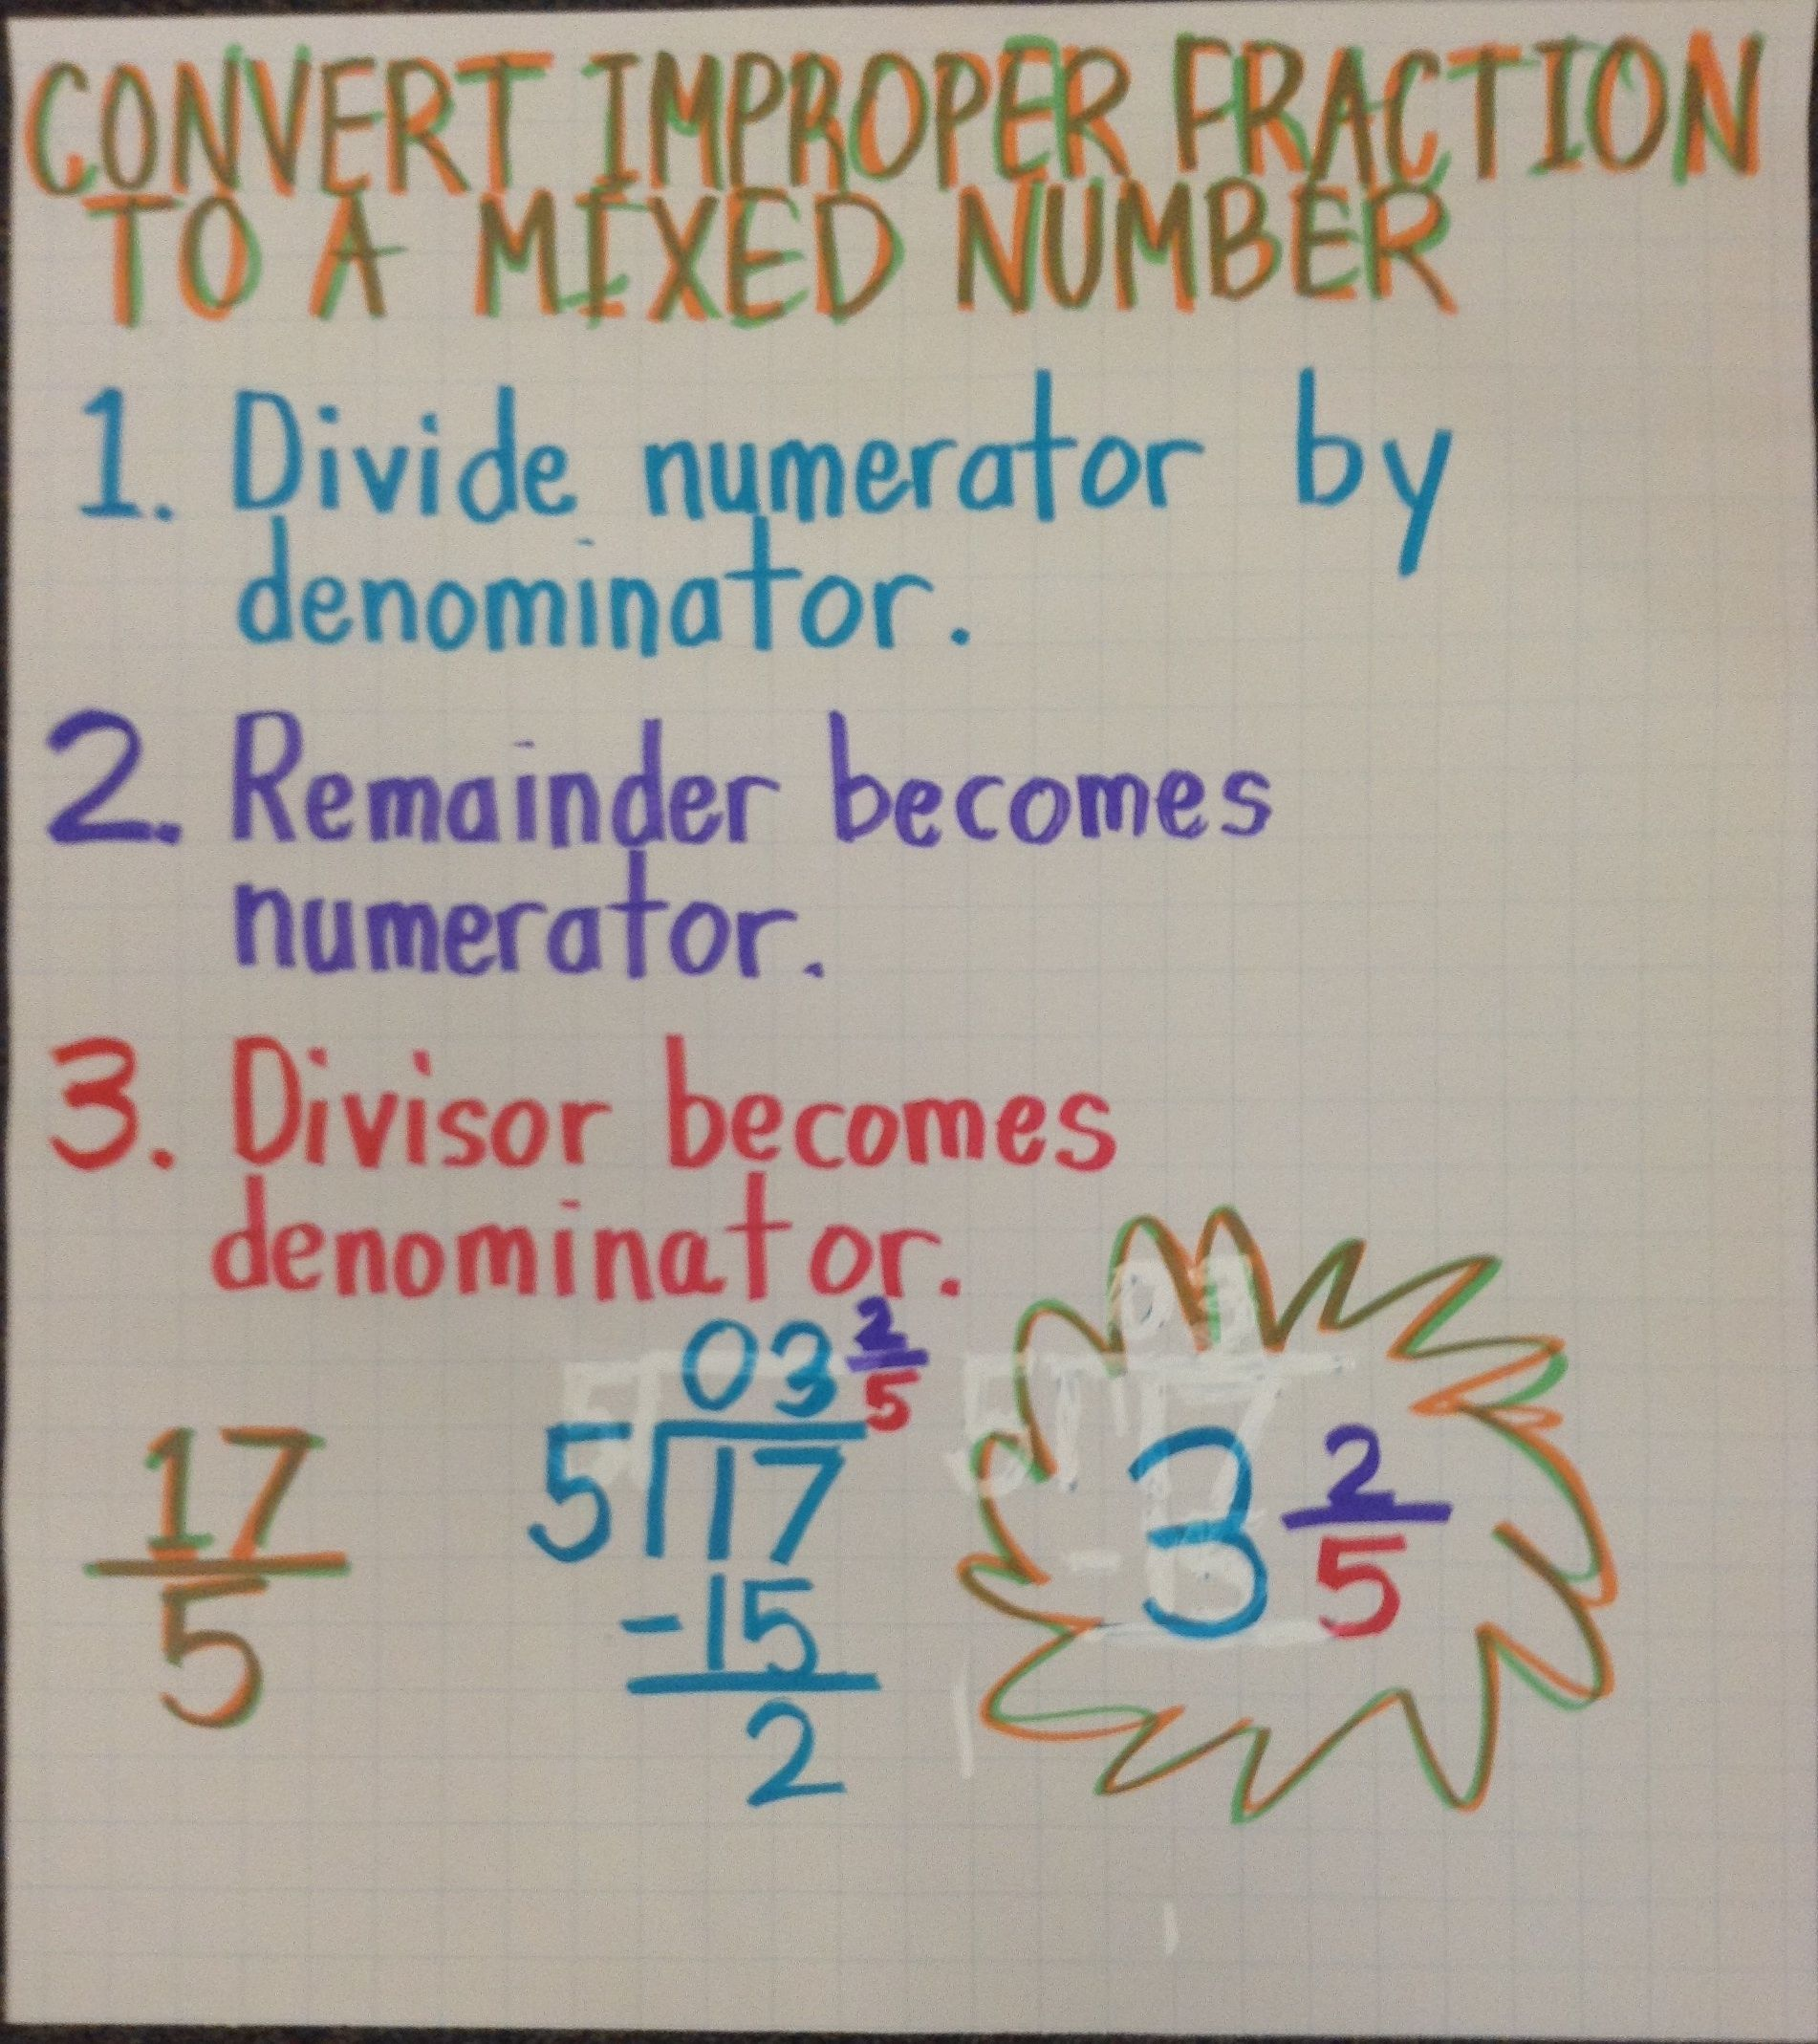 Worksheet Write Improper Fraction As Mixed Number improper fractions and mixed numbers all about math pinterest convert fraction to a number